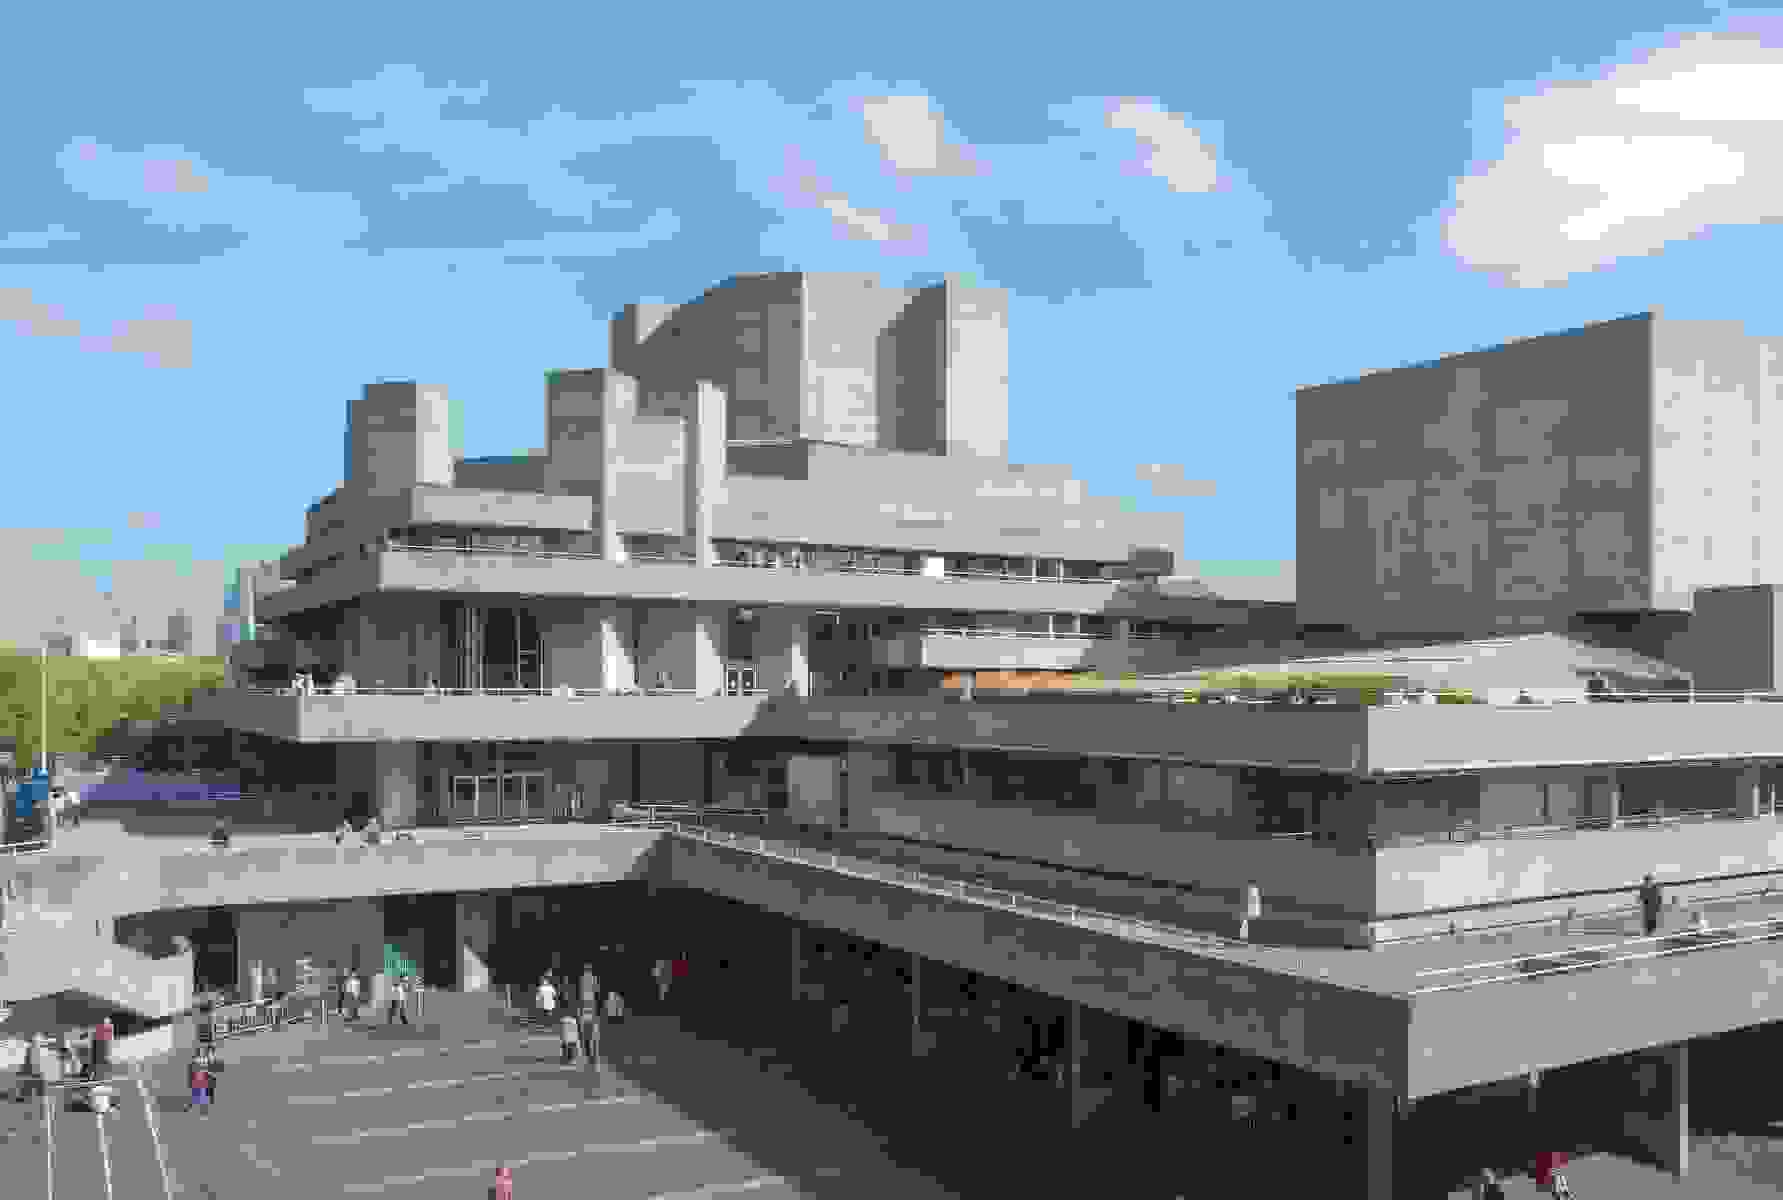 Royal National Theatre by Denys Lasdun | Source: crlrestoration.eu.com